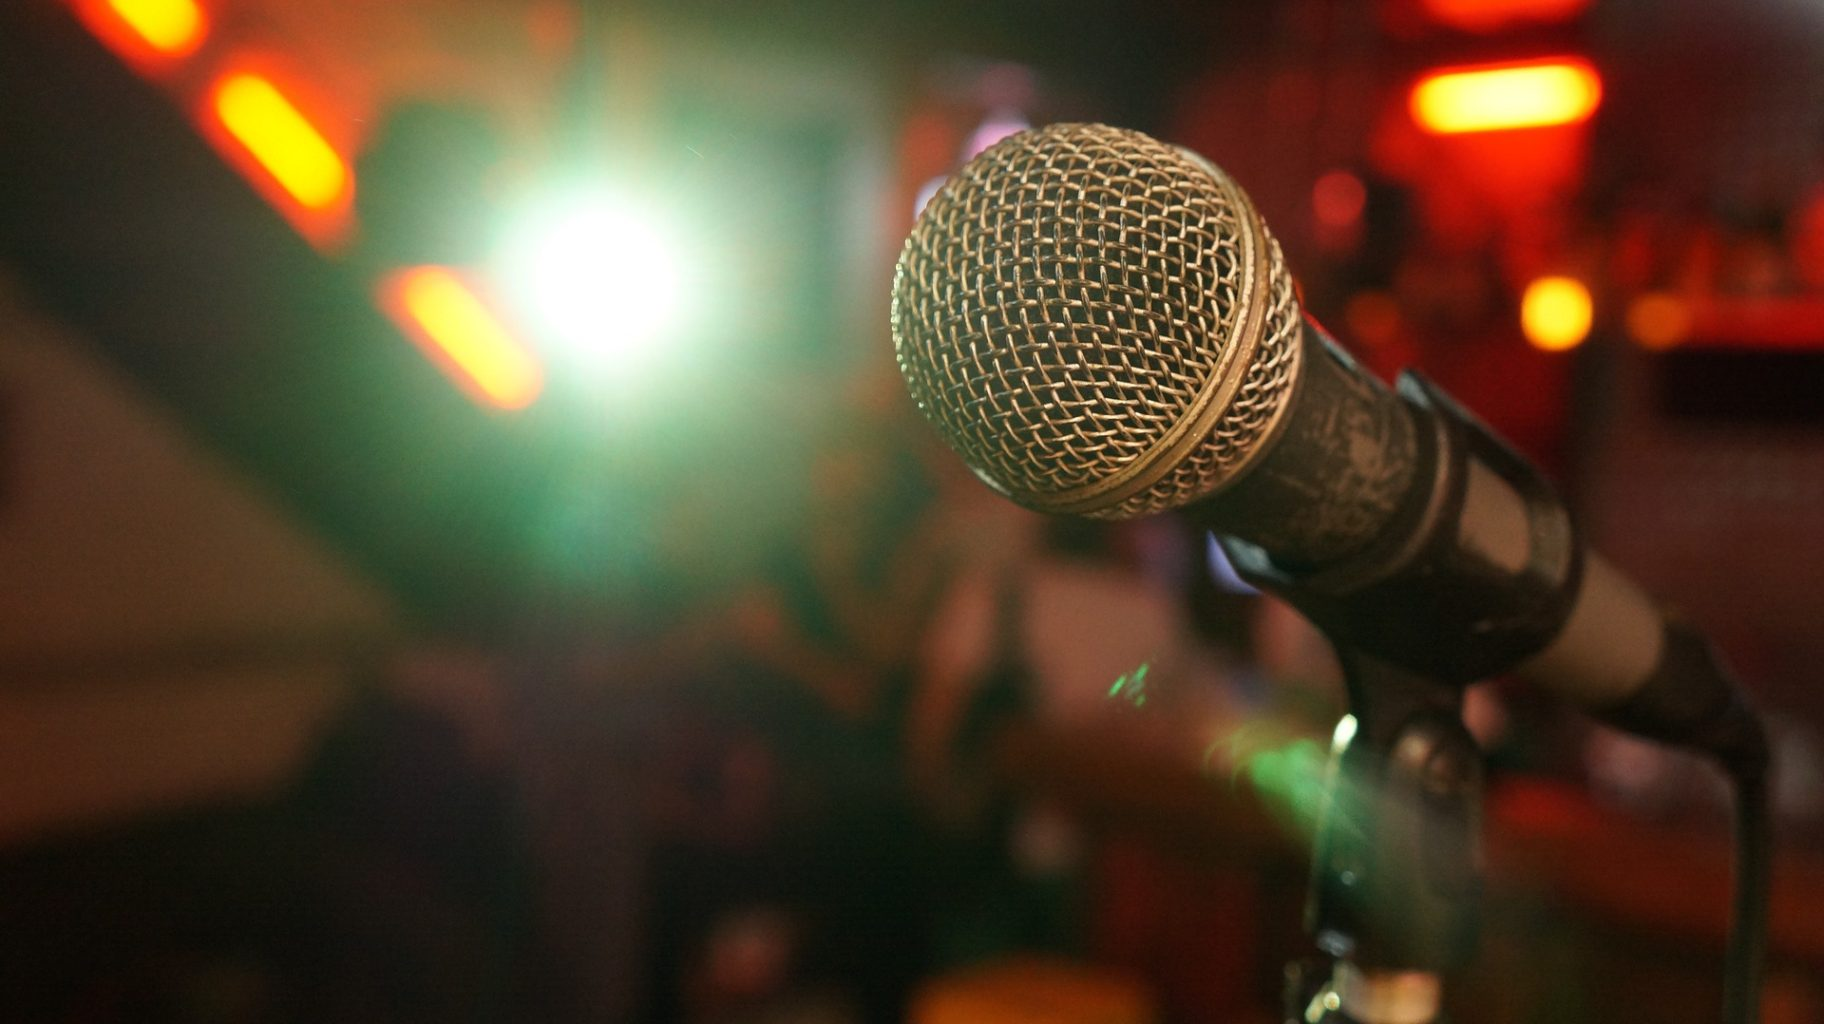 Image: microphone